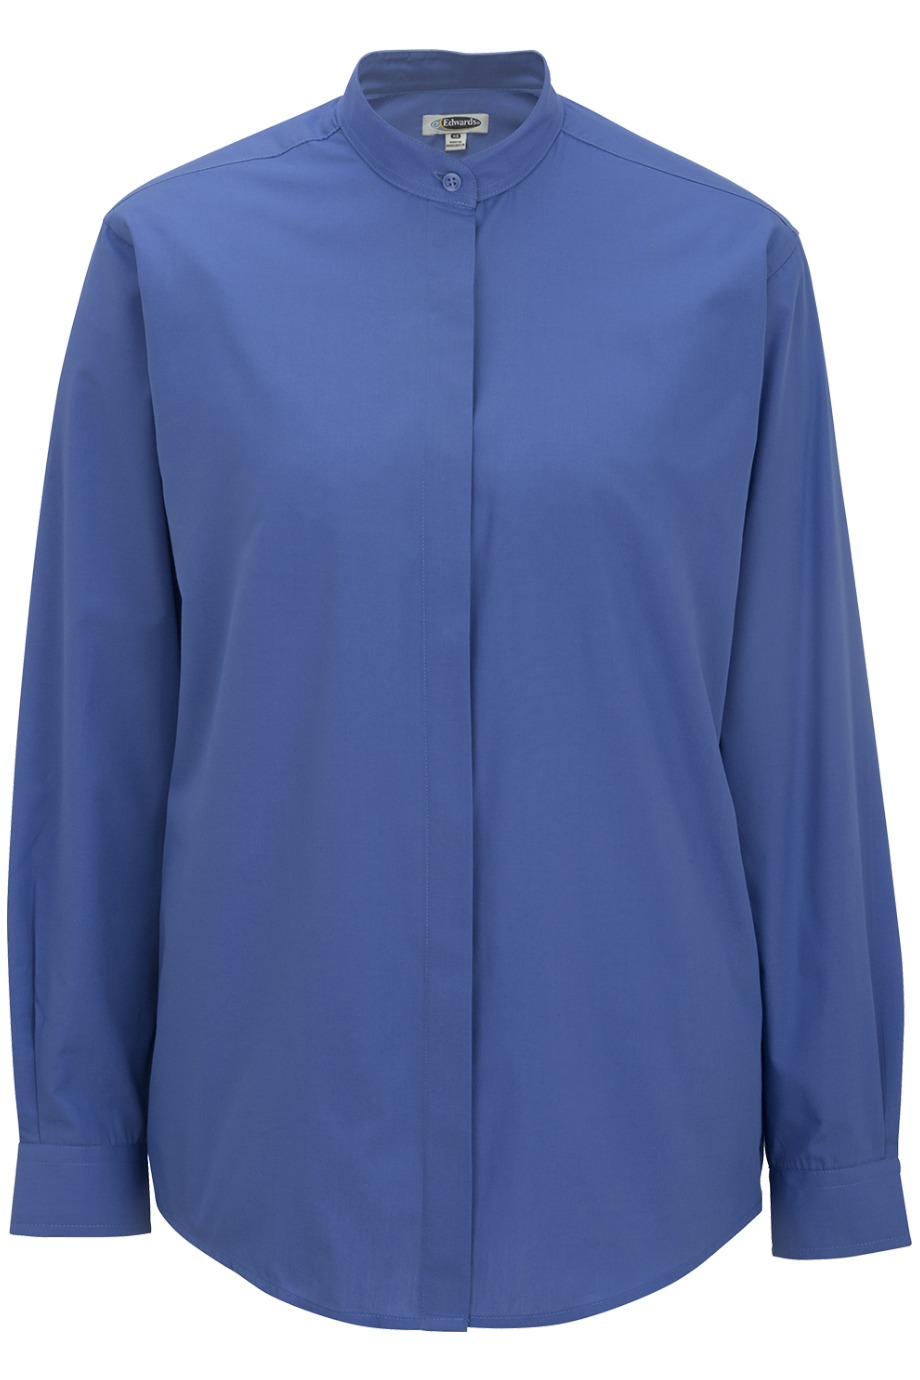 Edwards Garment 5396 - Women's Long Sleeve Banded Collar ...